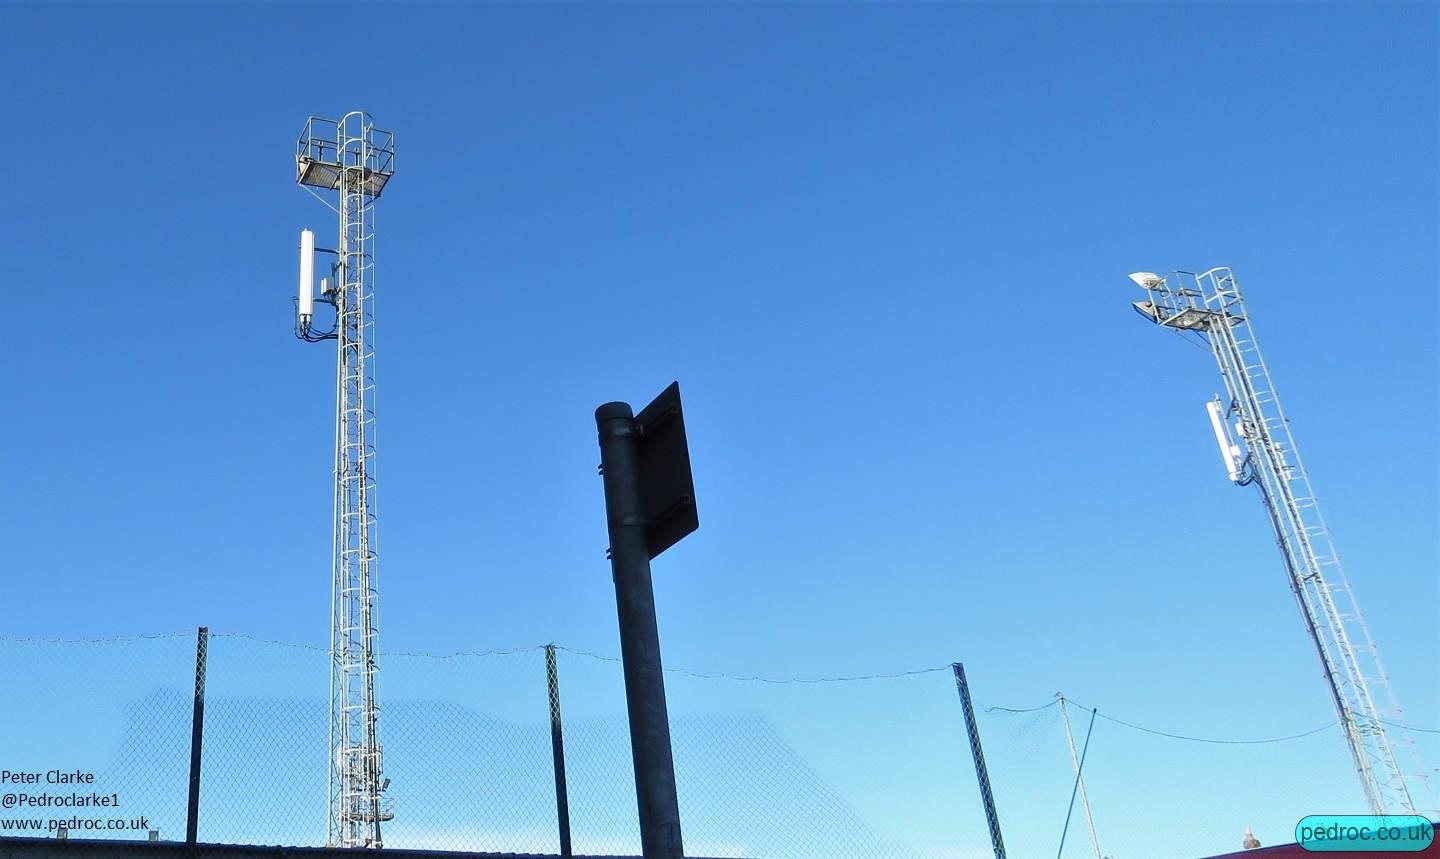 O2 Ericsson Site with kathrein antennas spread across two floodlight masts.